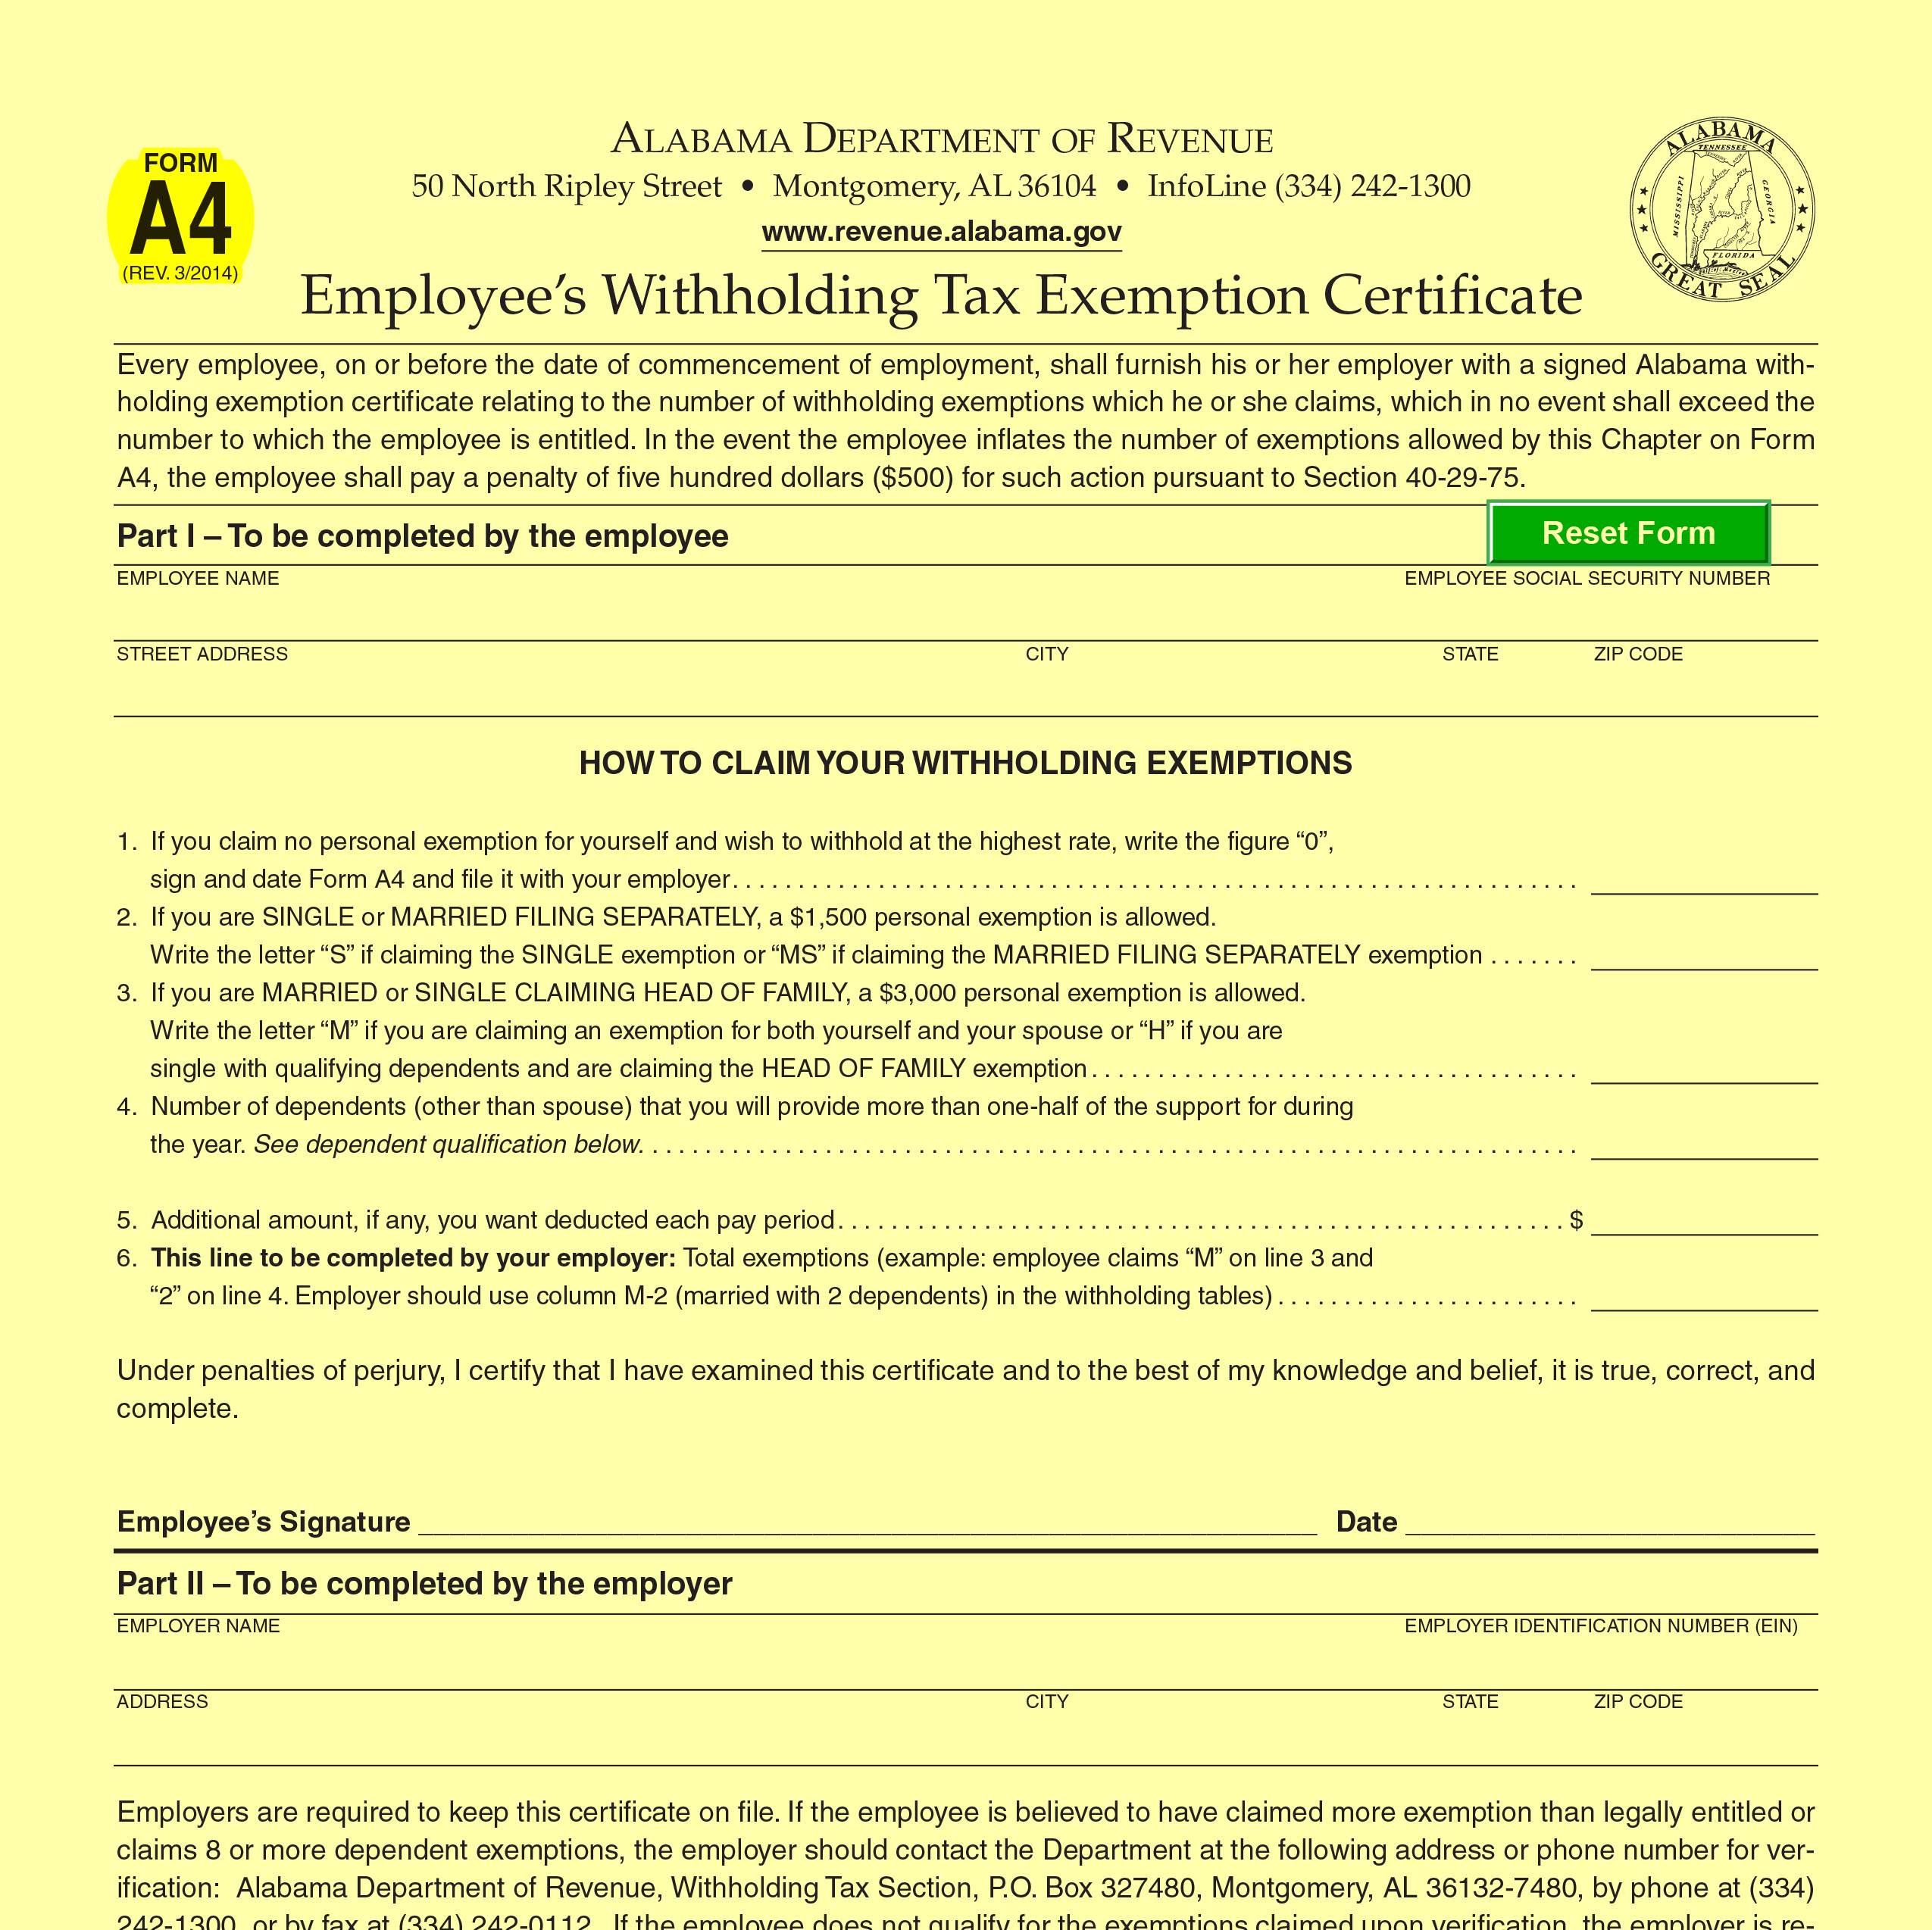 Alabama State Tax Withholding 2021